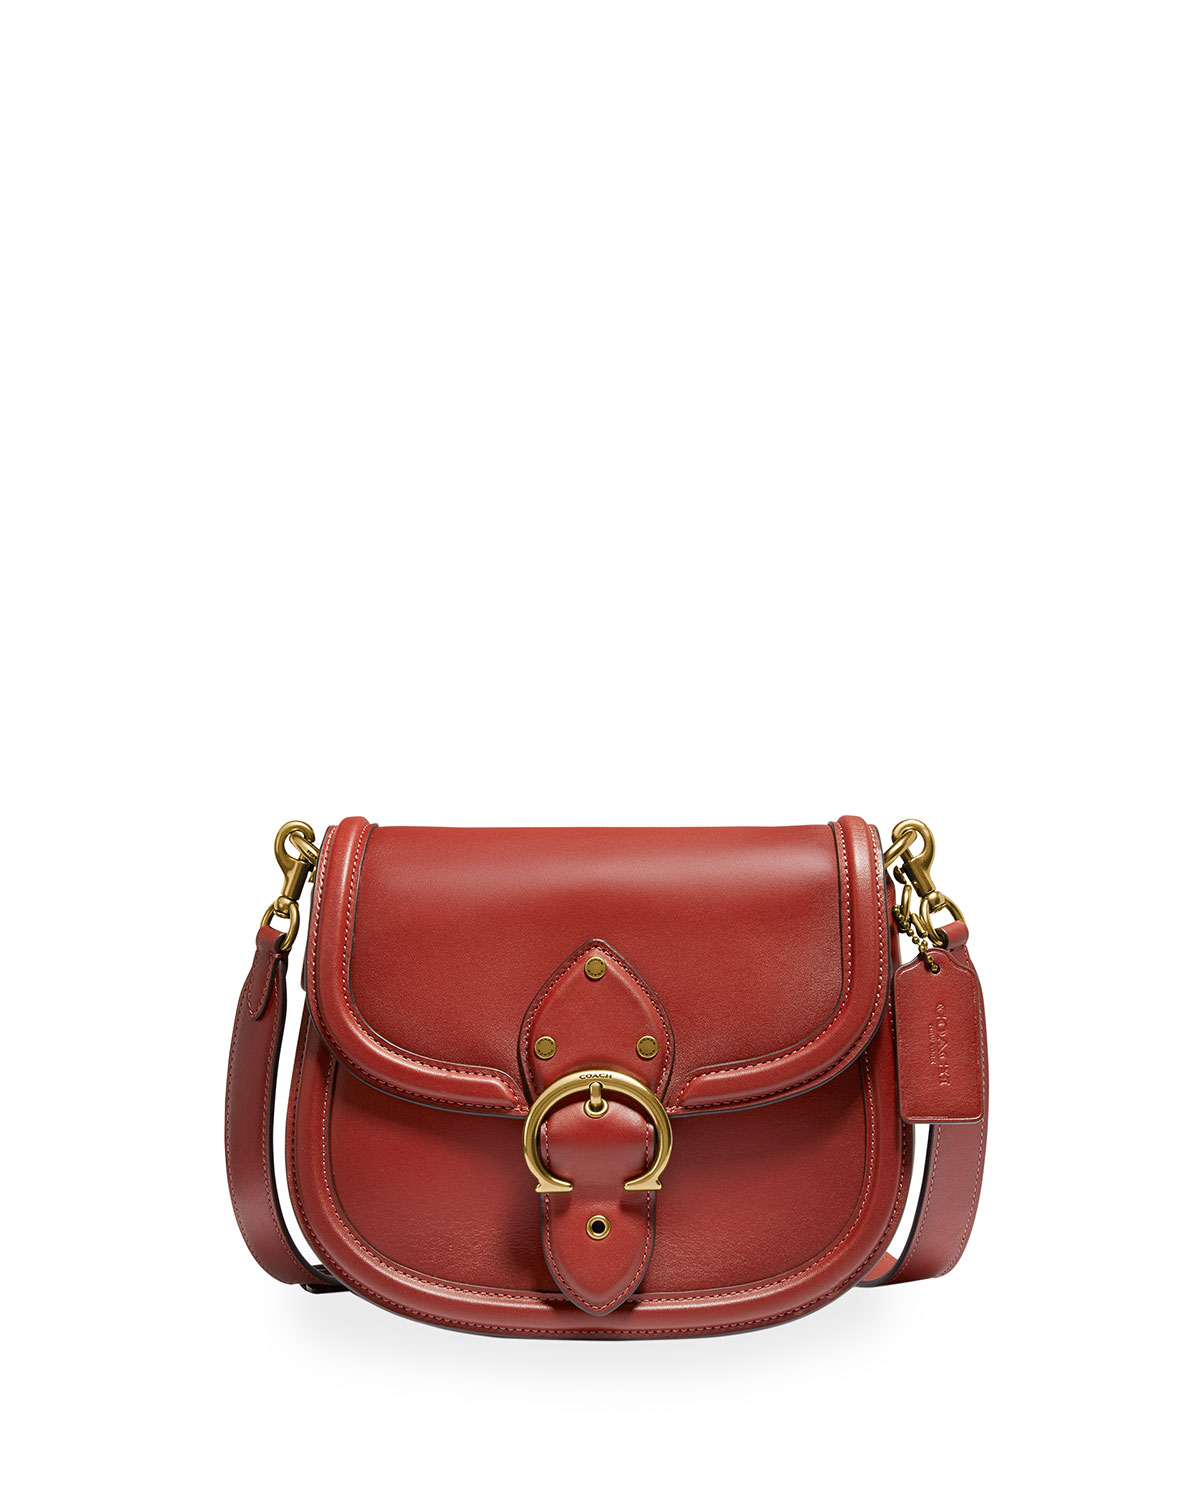 Coach Beat Glovetanned Leather Saddle Crossbody Bag In Red Sand